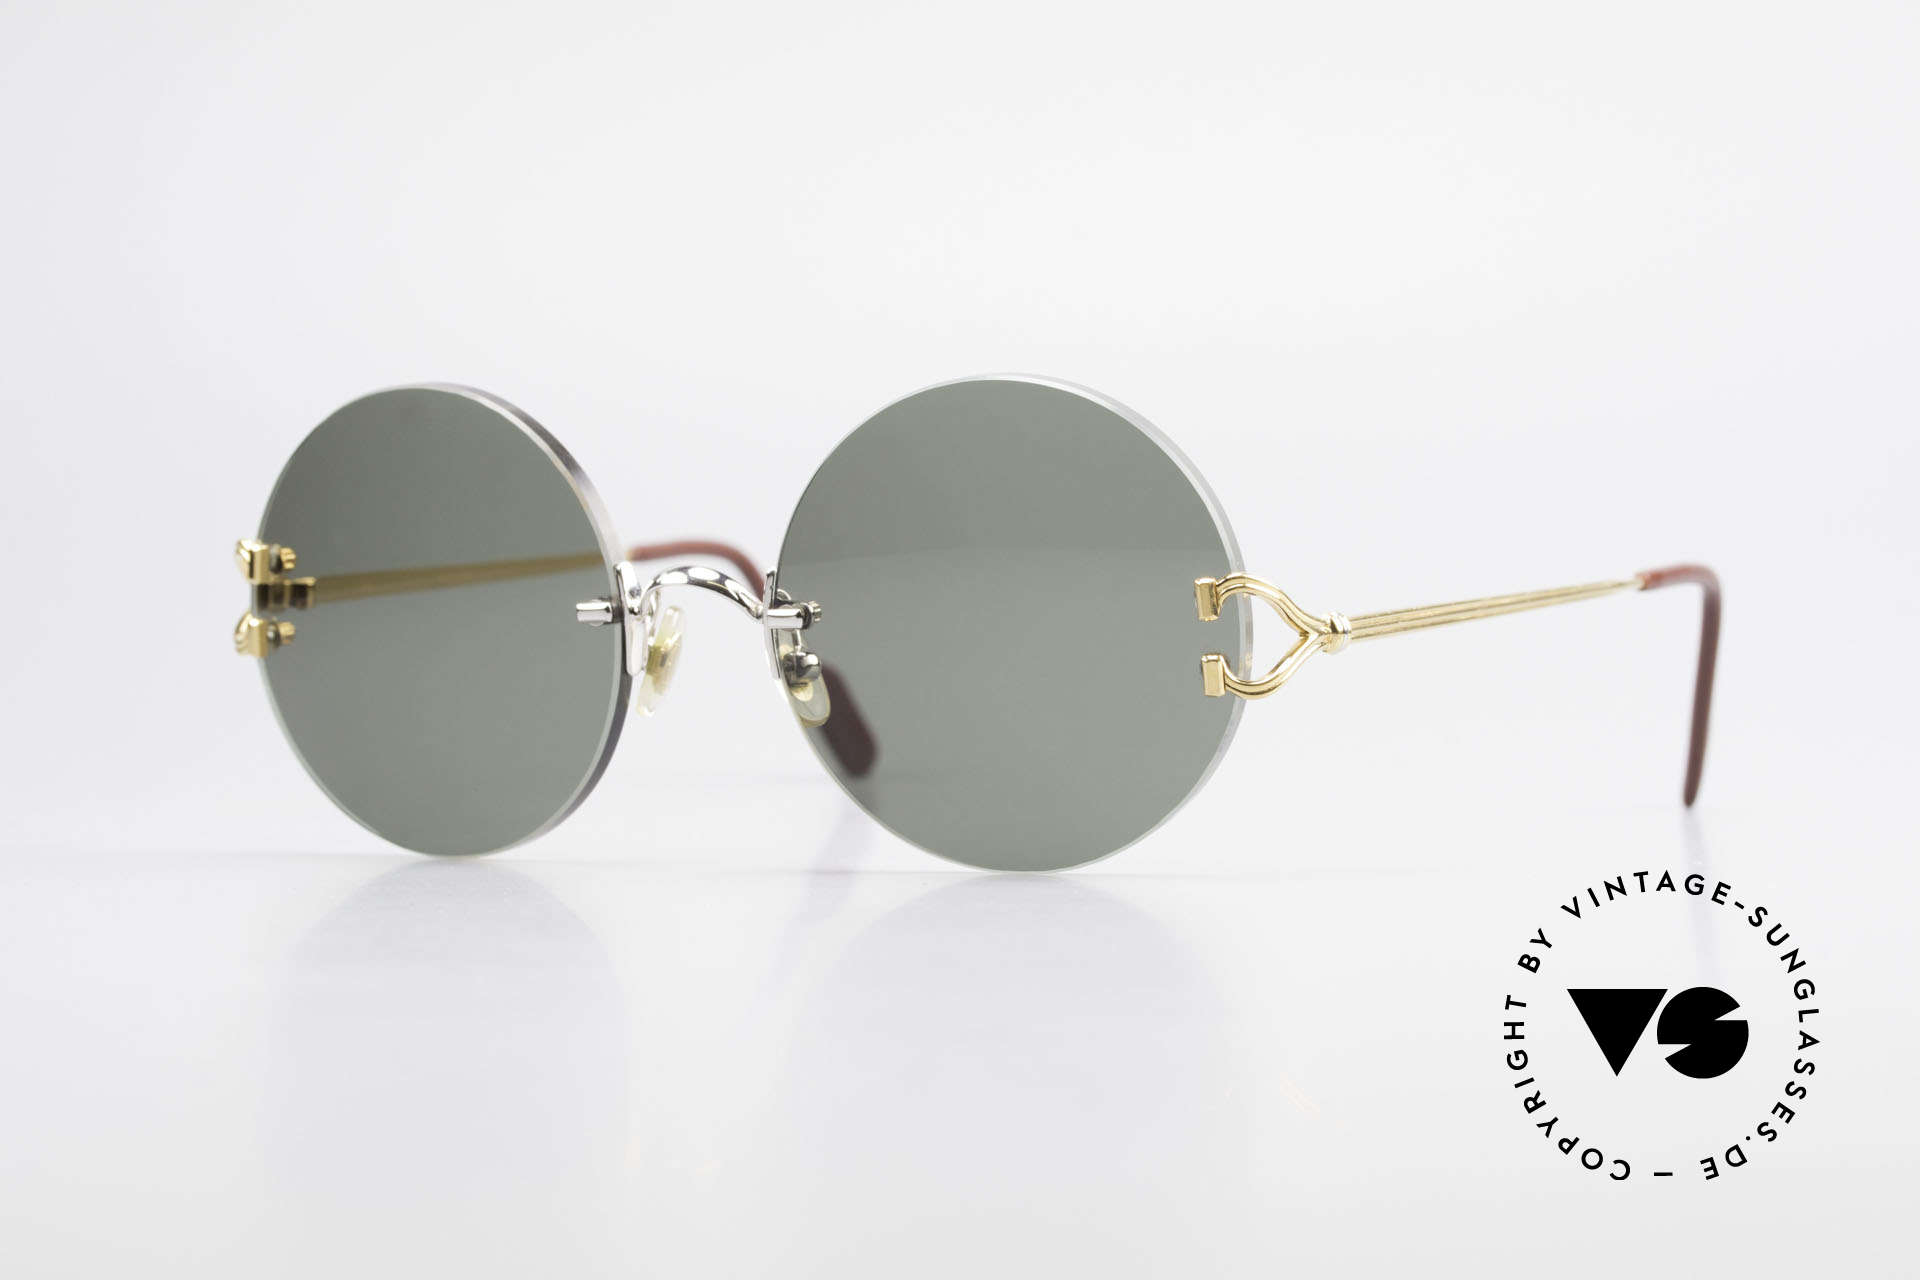 Cartier Madison Round Customized Sunglasses, noble rimless CARTIER luxury sunglasses from 1997, Made for Men and Women